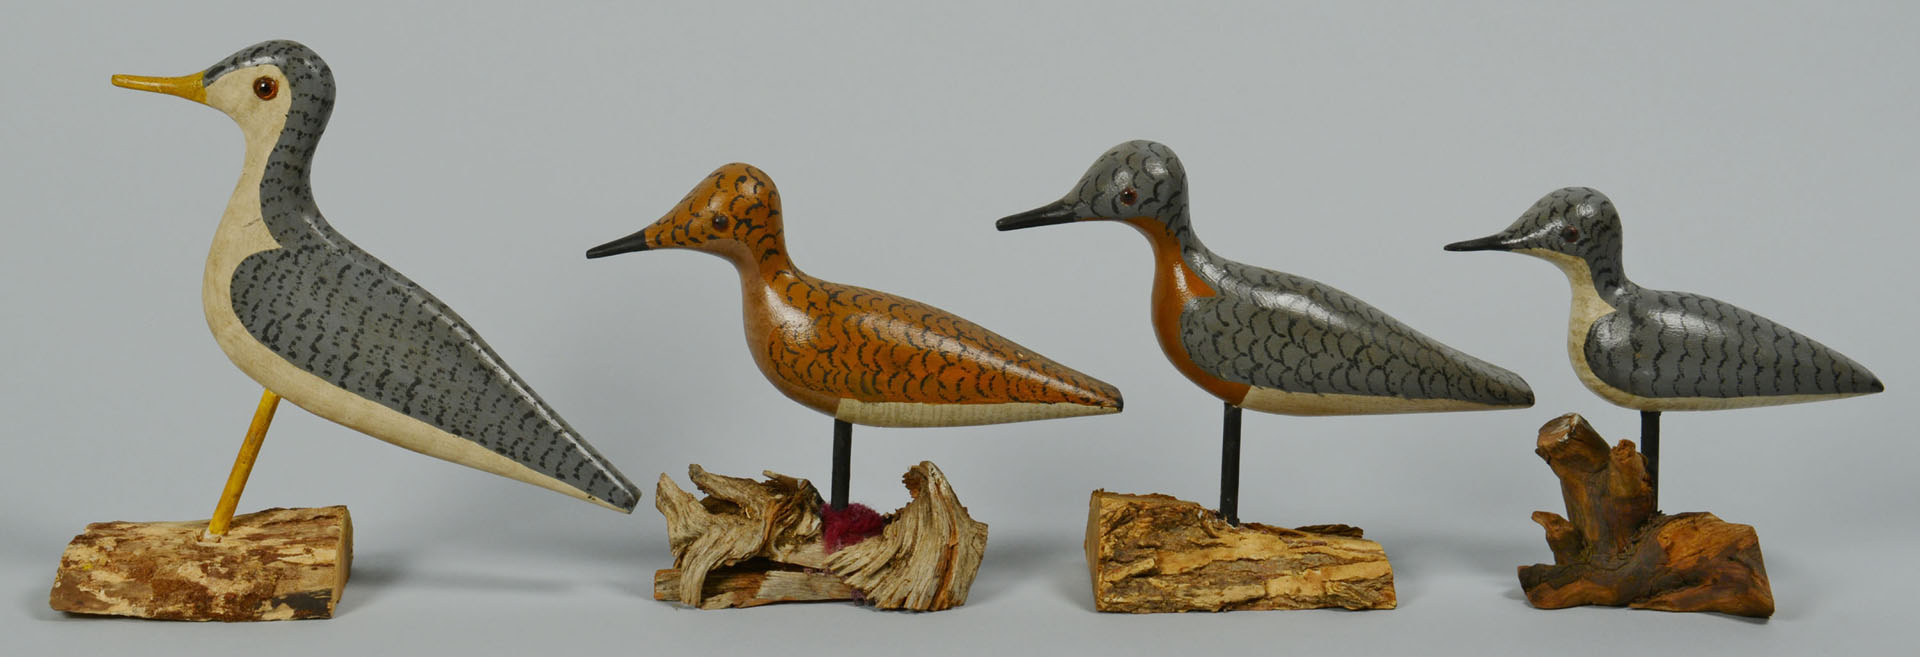 8 Shorebirds by Percy Perkins, N.H. inc Seagull